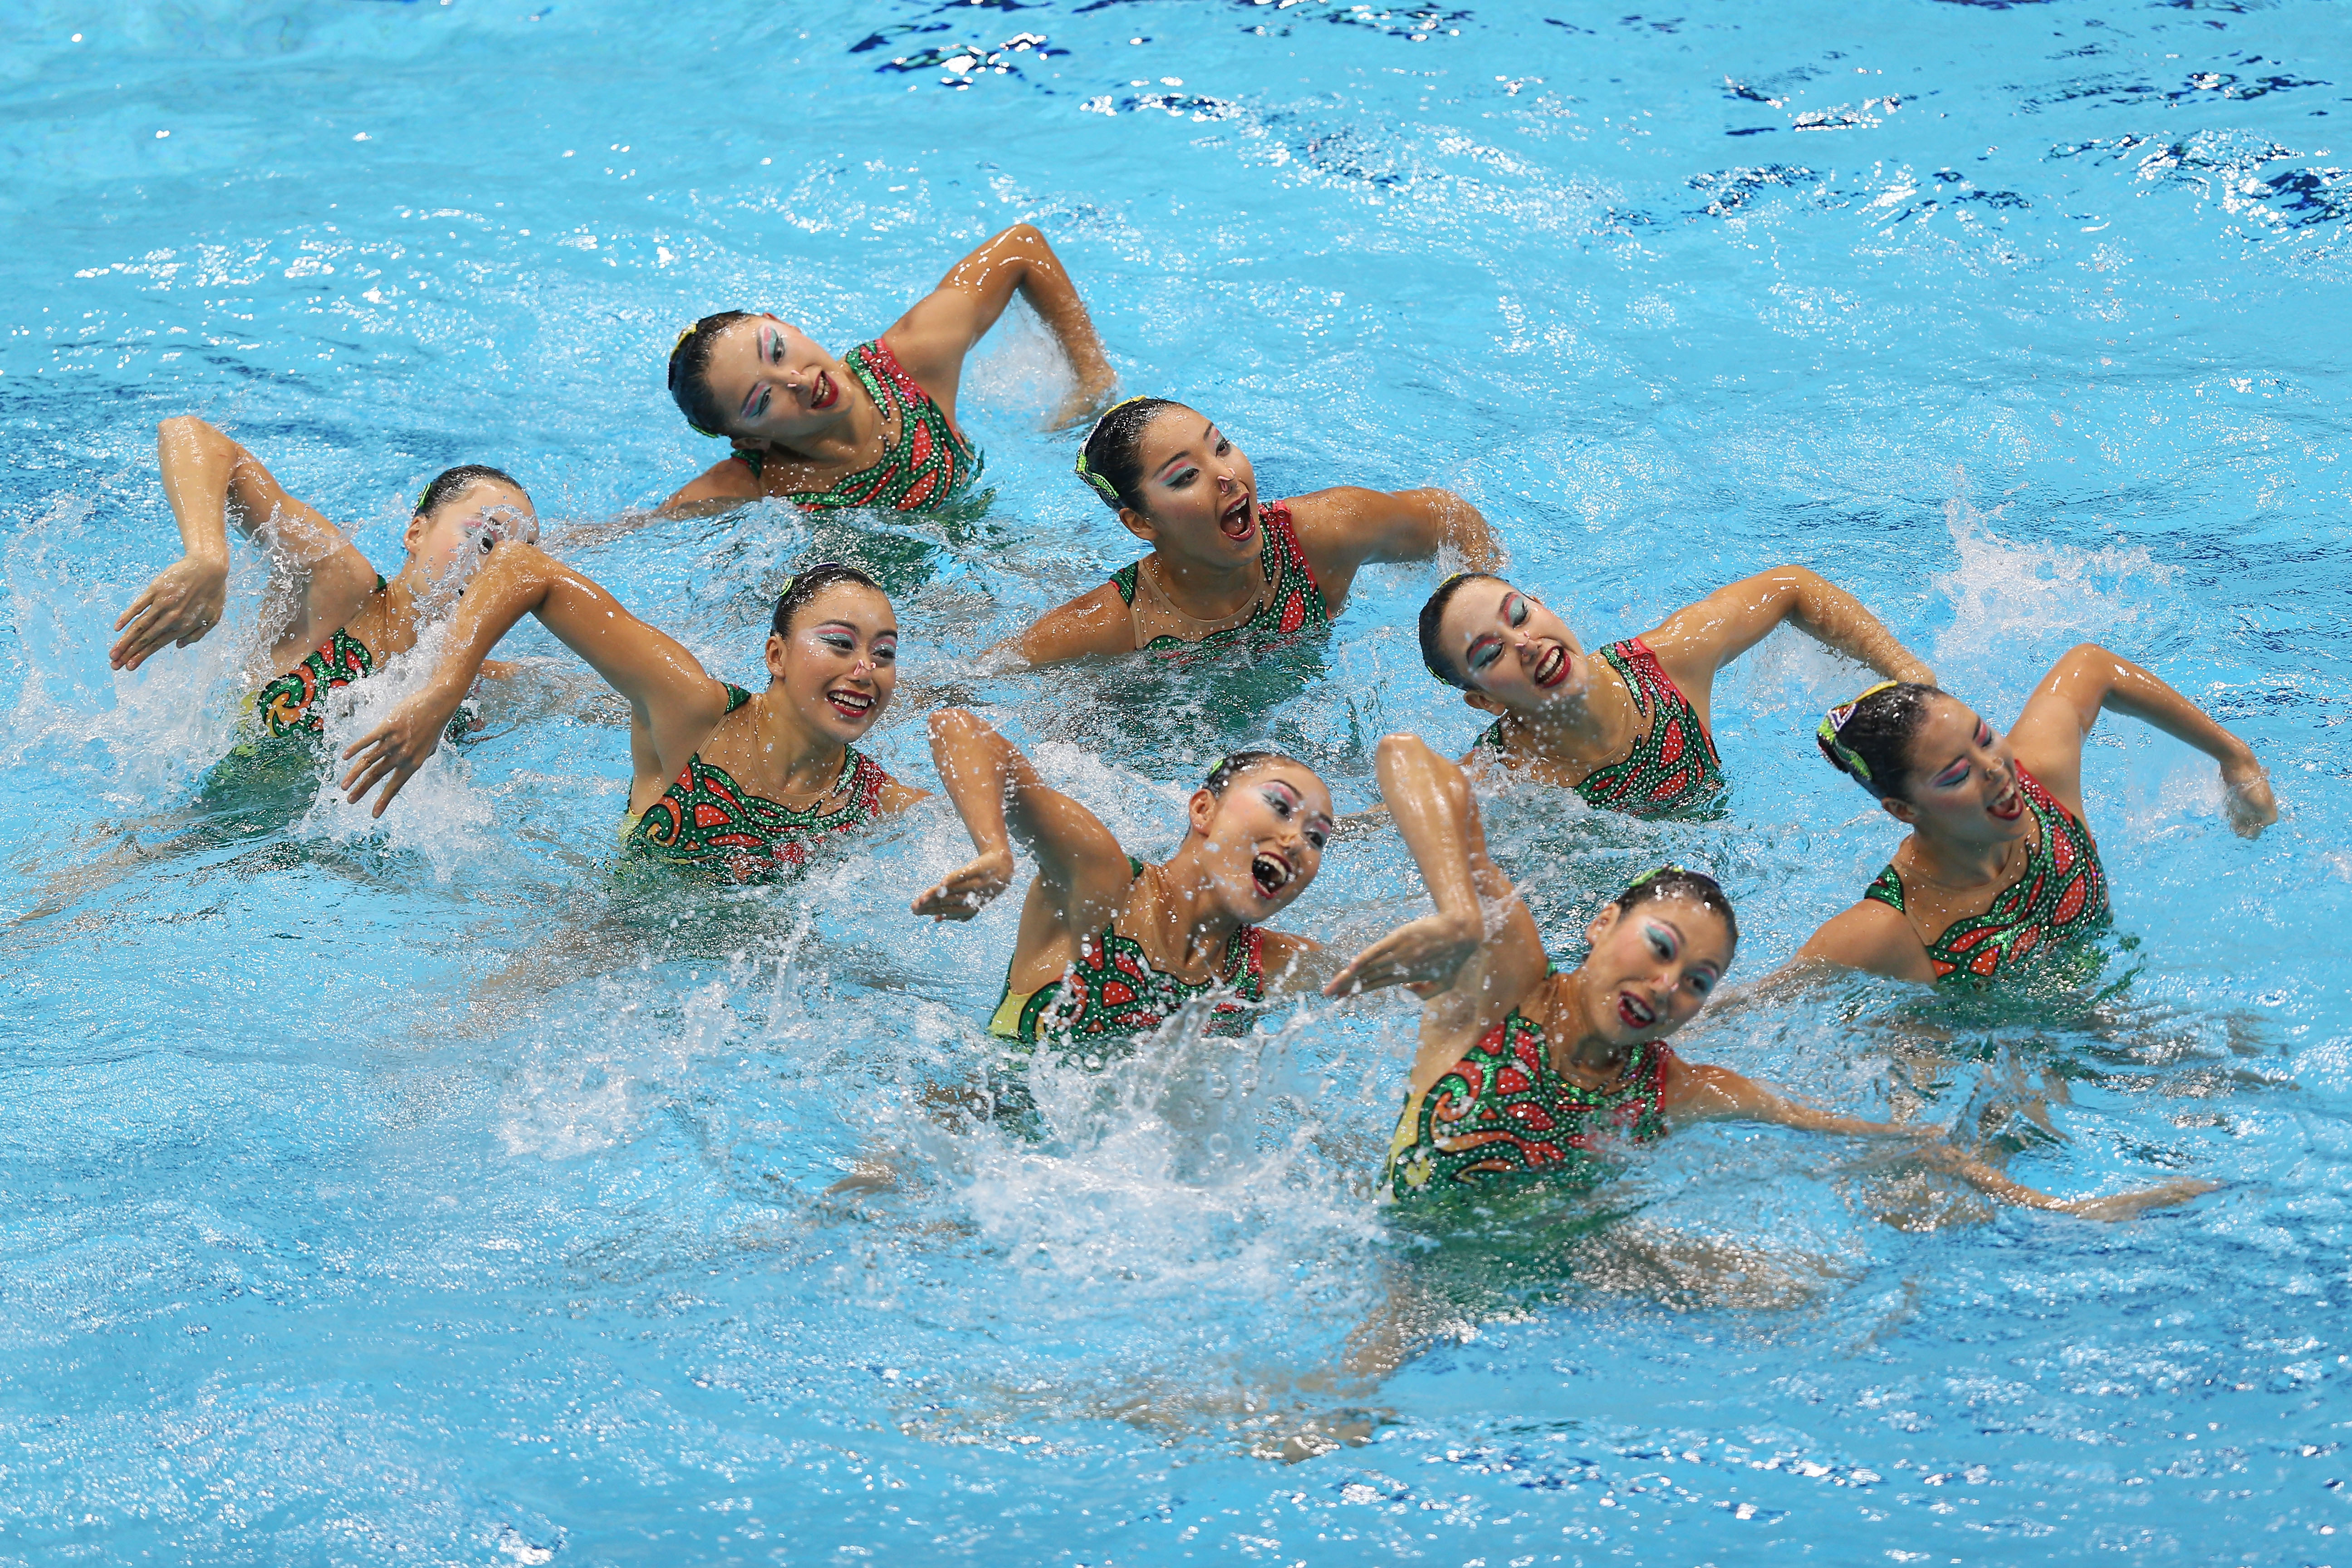 japan synchronised swimming team 2012